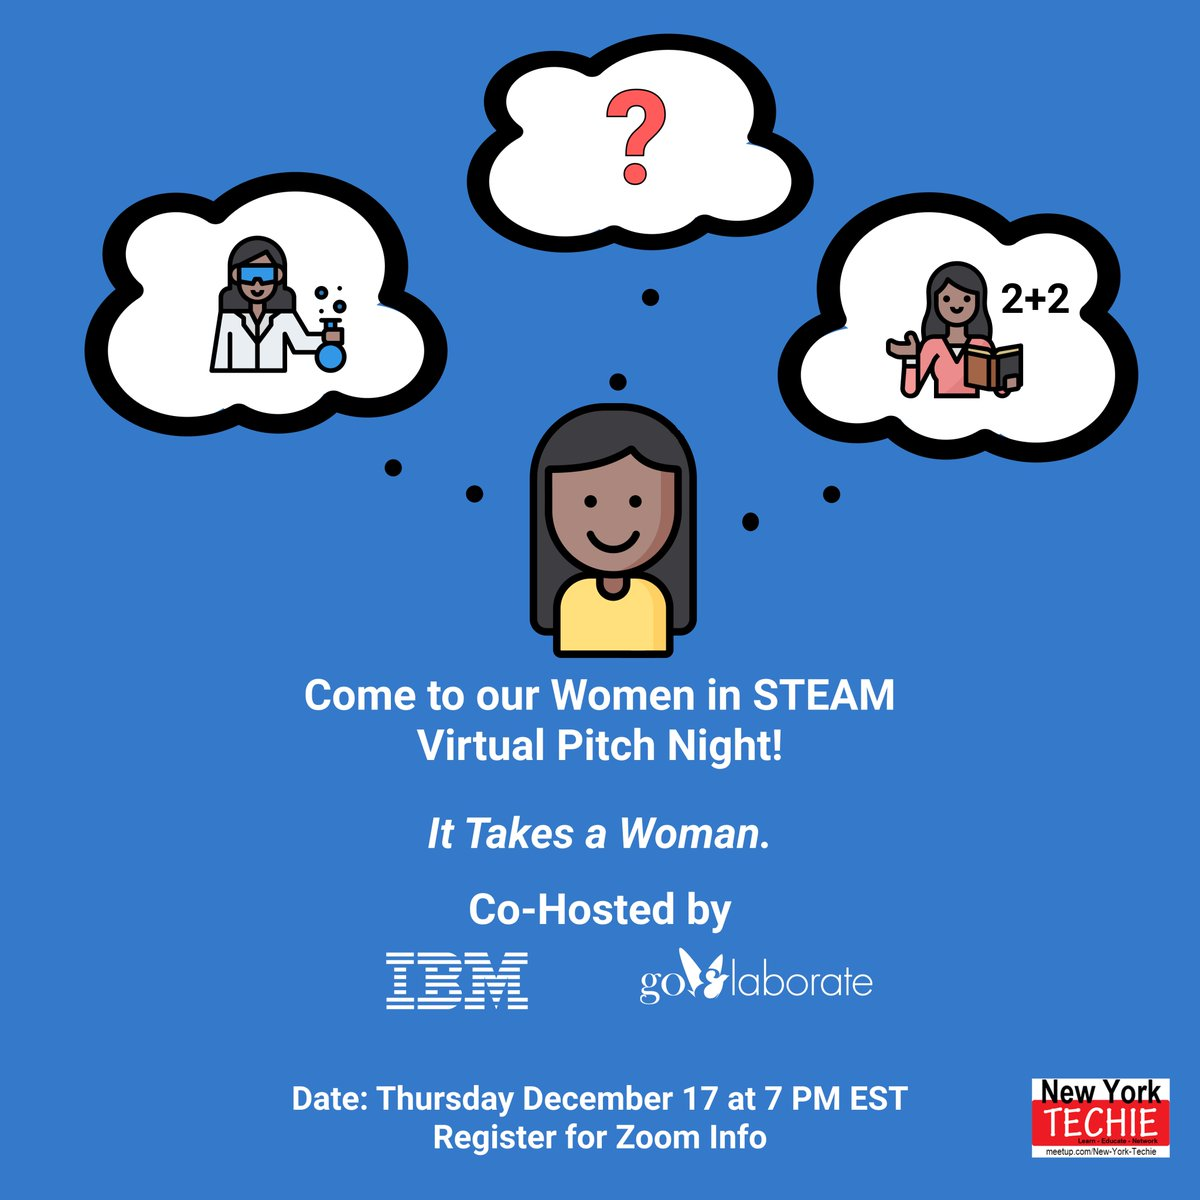 1 Week Left Until the Women in STEAM Virtual Pitch Night! Join us at 7 PM EST on Thursday, December 17. Register using the link below.    #Startup #Ideas #PitchNight #StartupLife #startups  #goElaborate